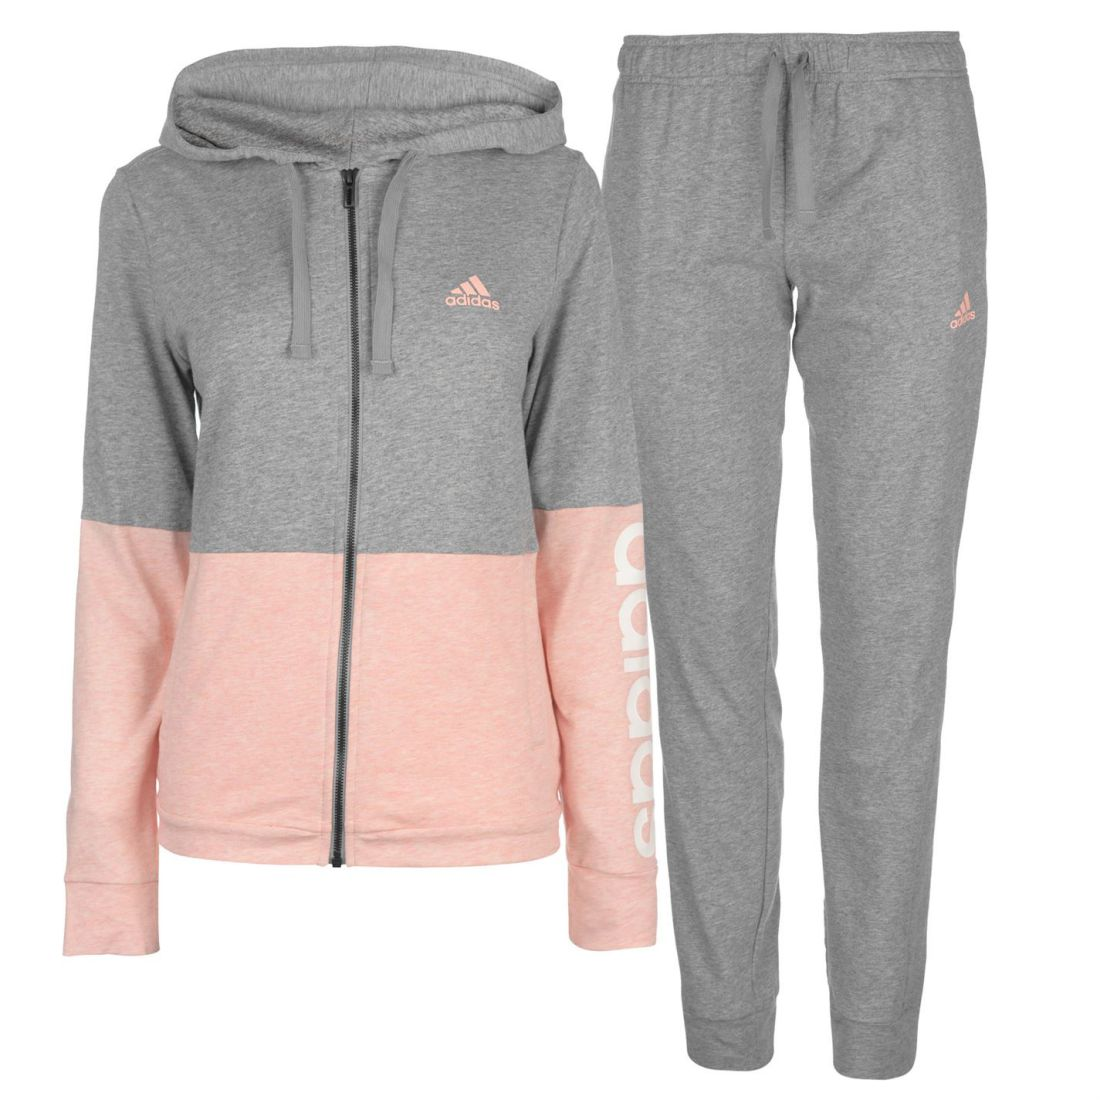 Details about adidas Marker Tracksuit Ladies Fleece Full Length Sleeve Hooded Zip Zipped